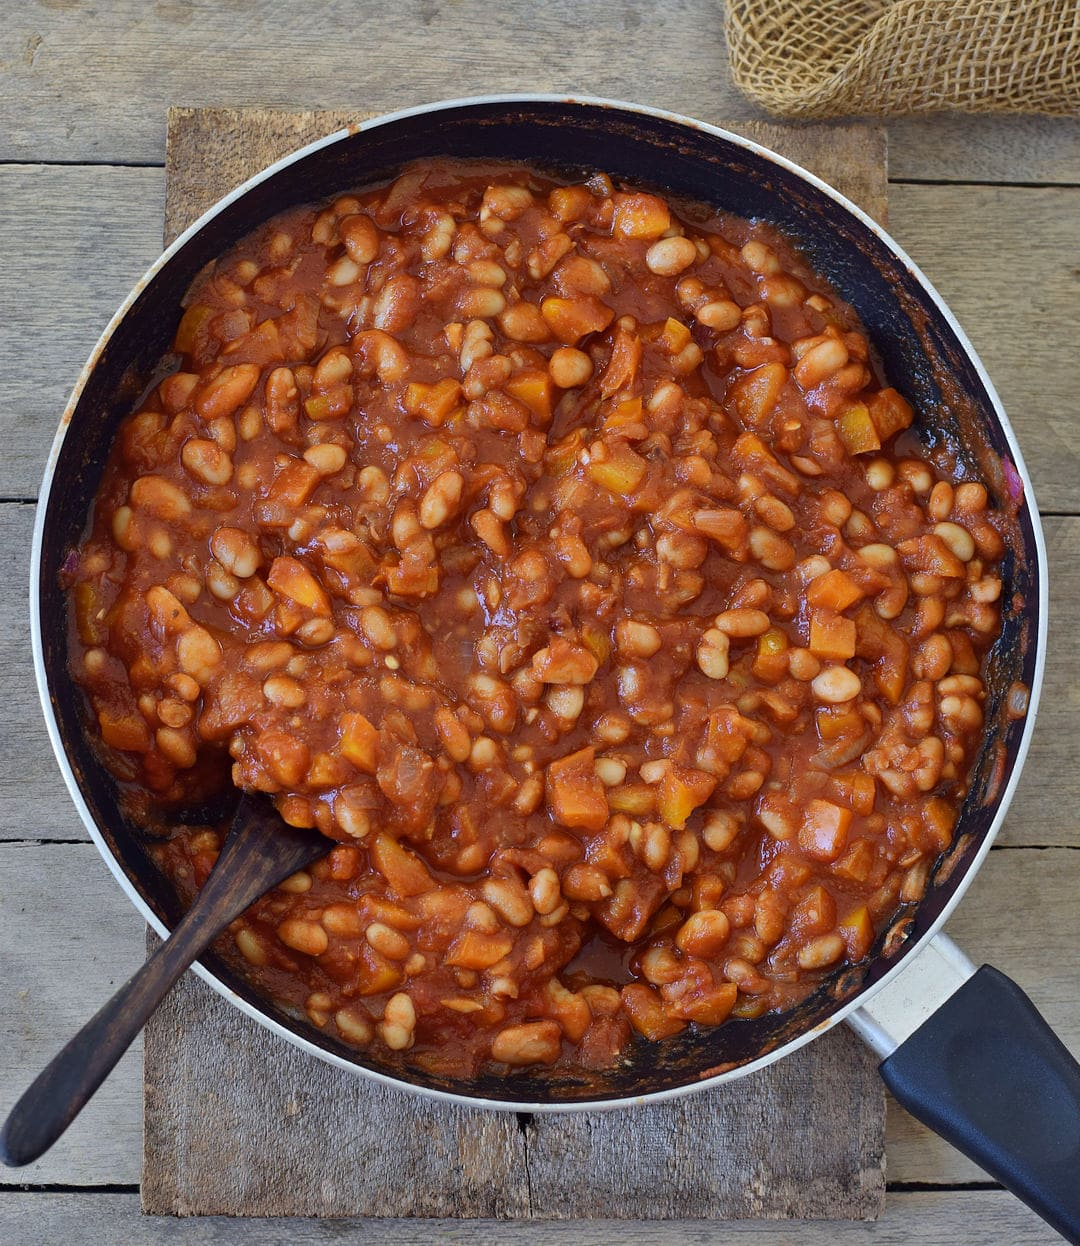 tomato sauce with cannellini beans in a pan